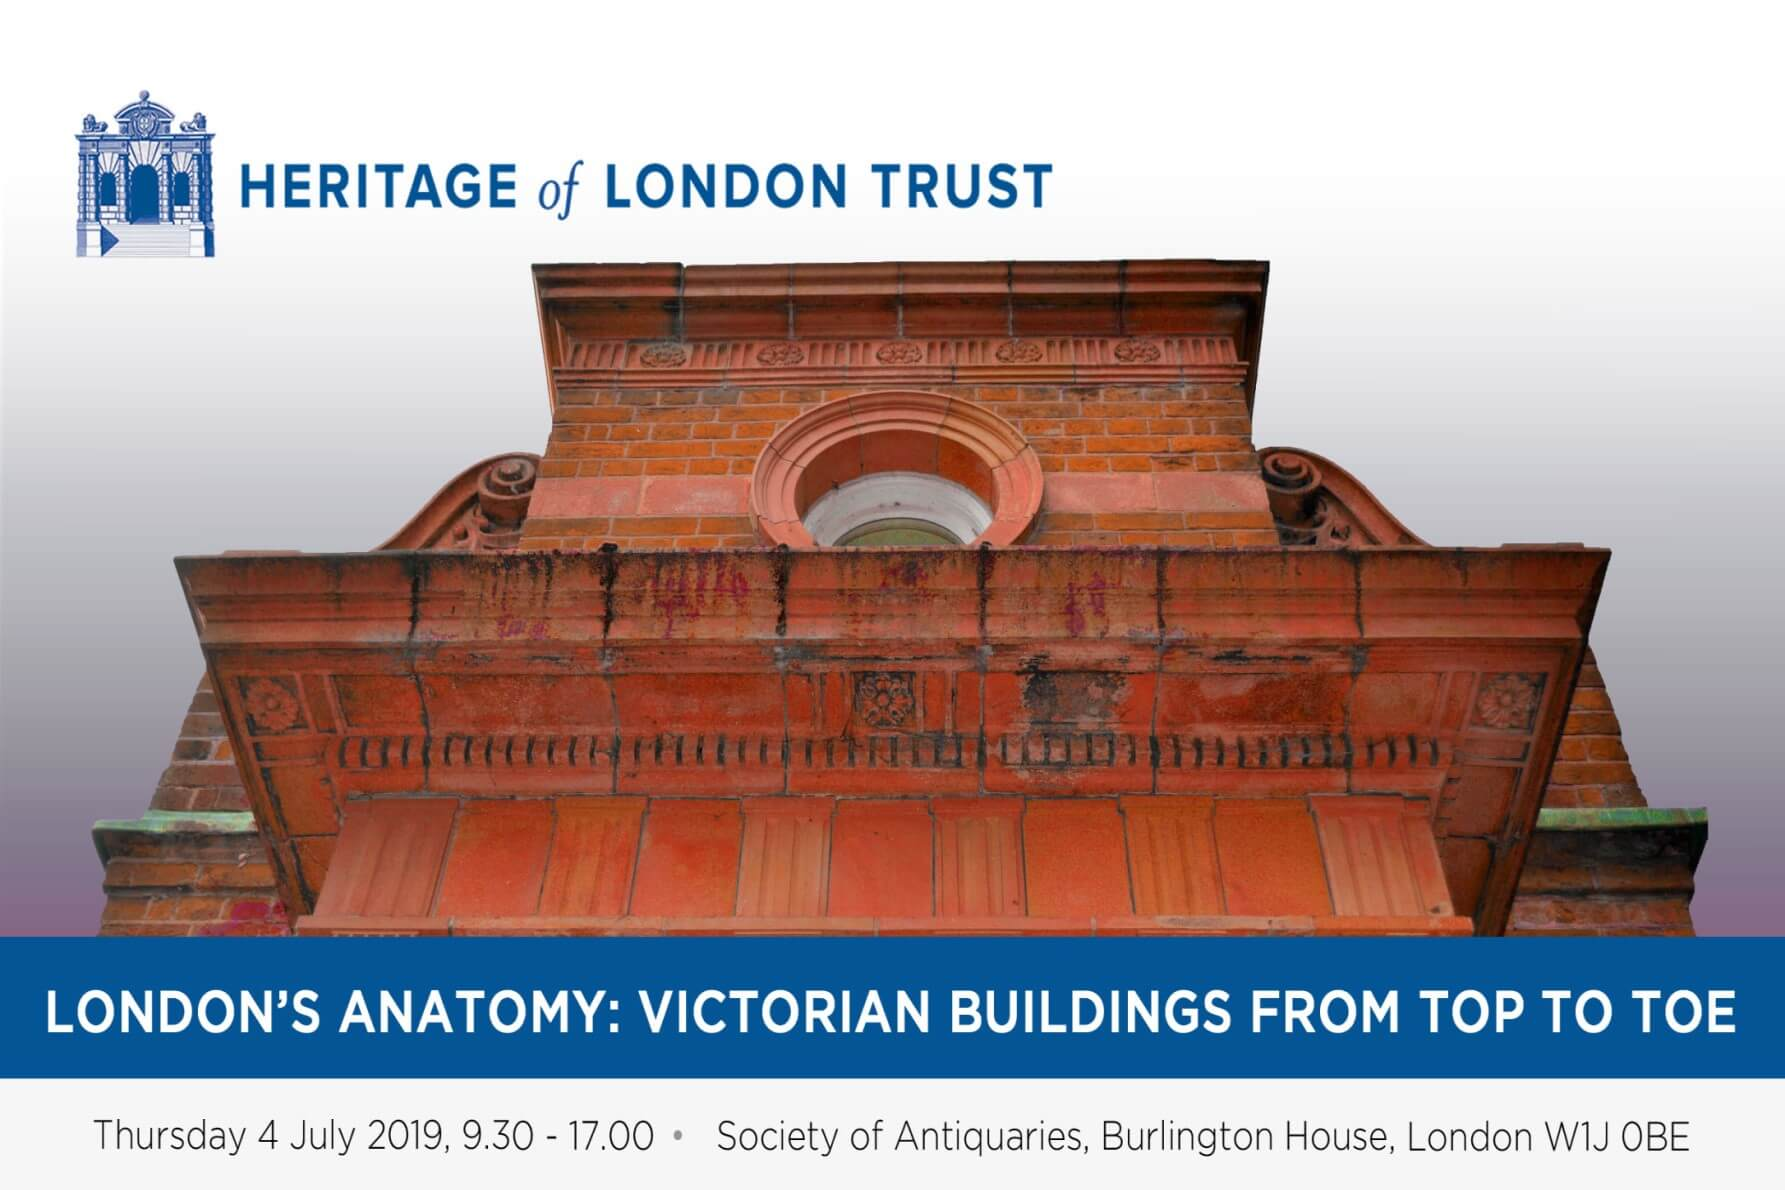 London's Anatomy: Victorian Buildings from Top to Toe